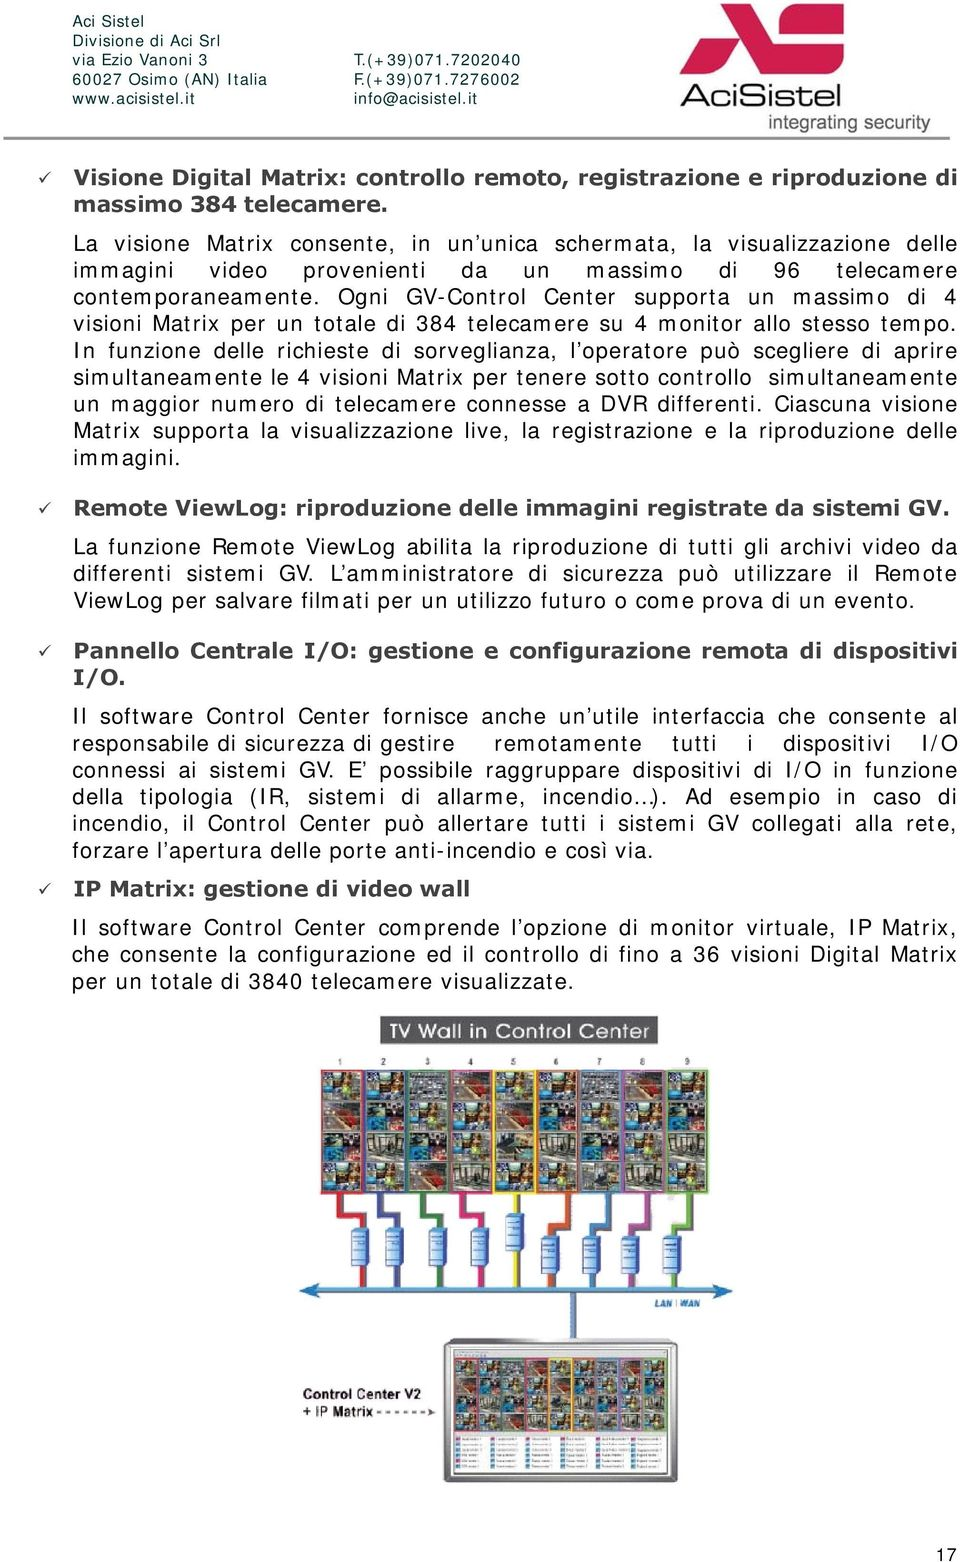 Ogni GV-Cntrl Center supprta un massim di 4 visini Matrix per un ttale di 384 telecamere su 4 mnitr all stess temp.